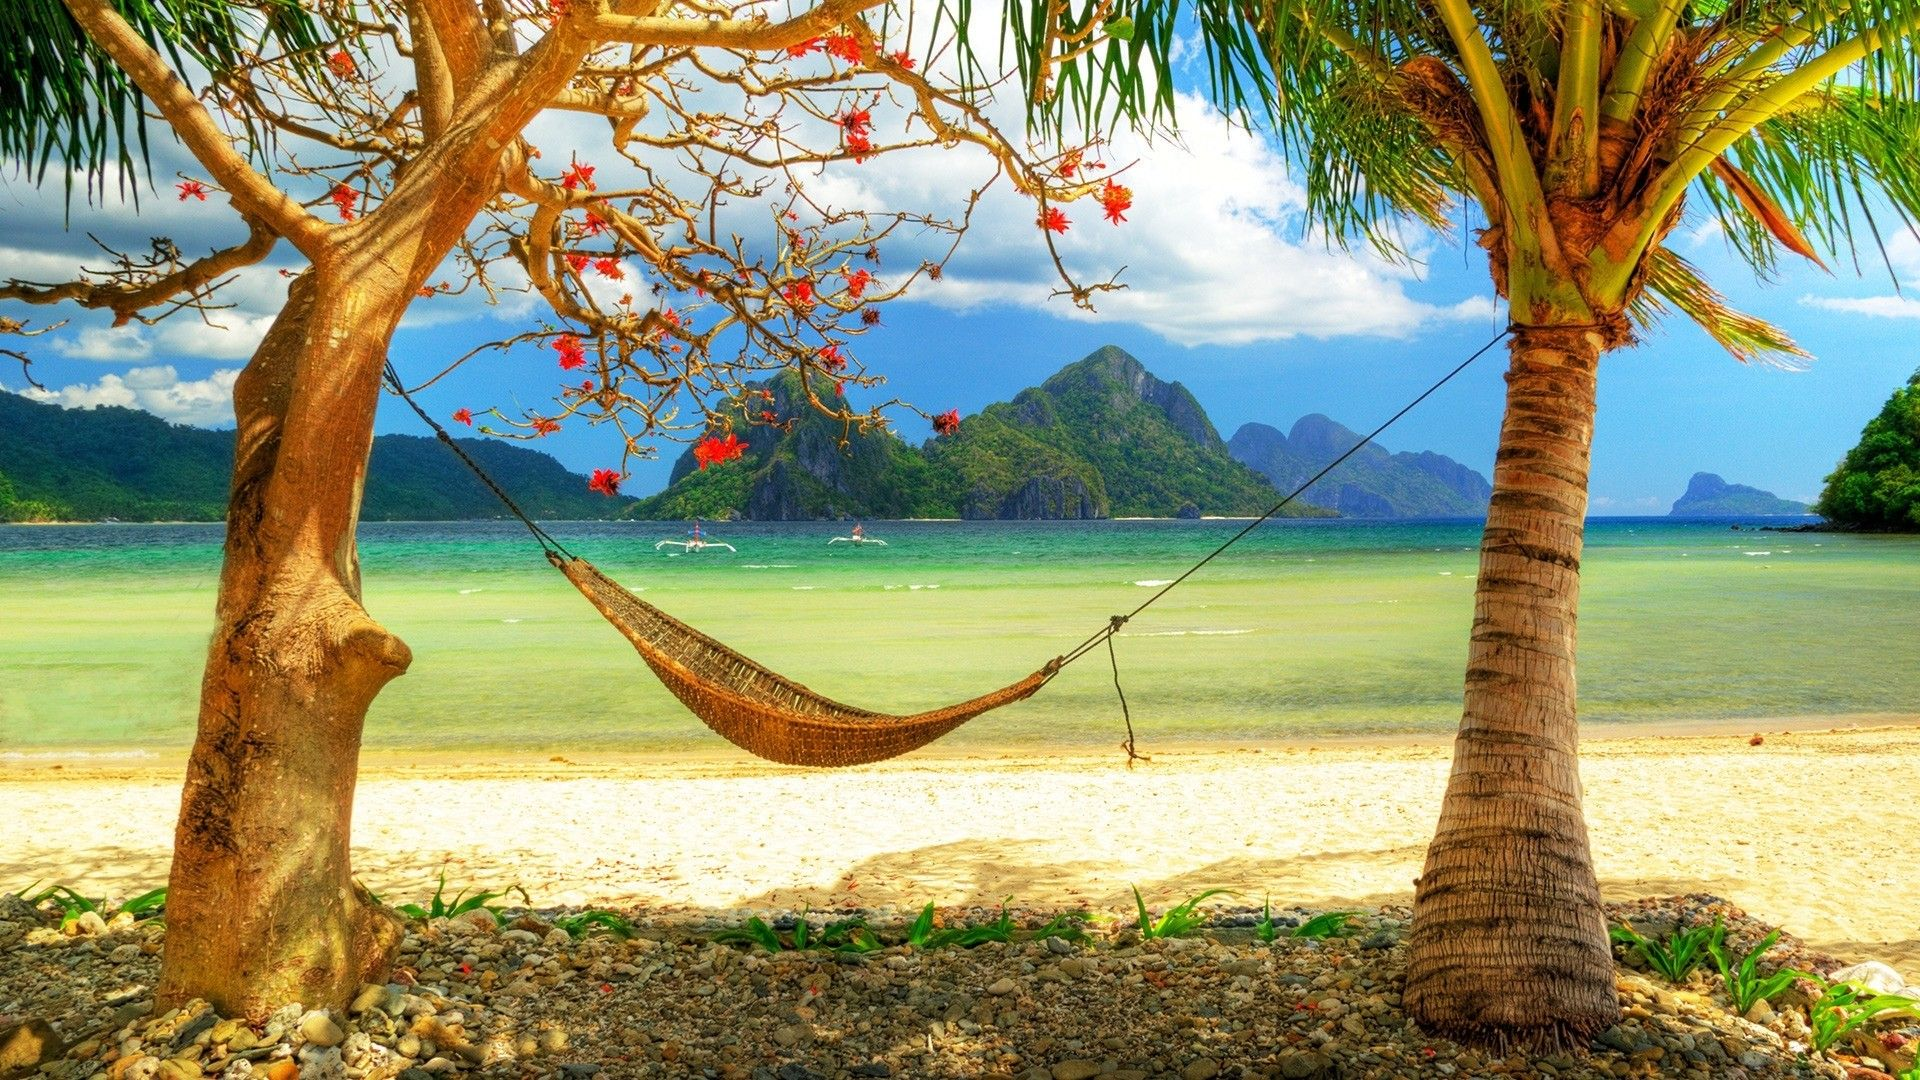 Beautiful Desktop Wallpapers Large Size   ImgHD Browse and Download 1920x1080